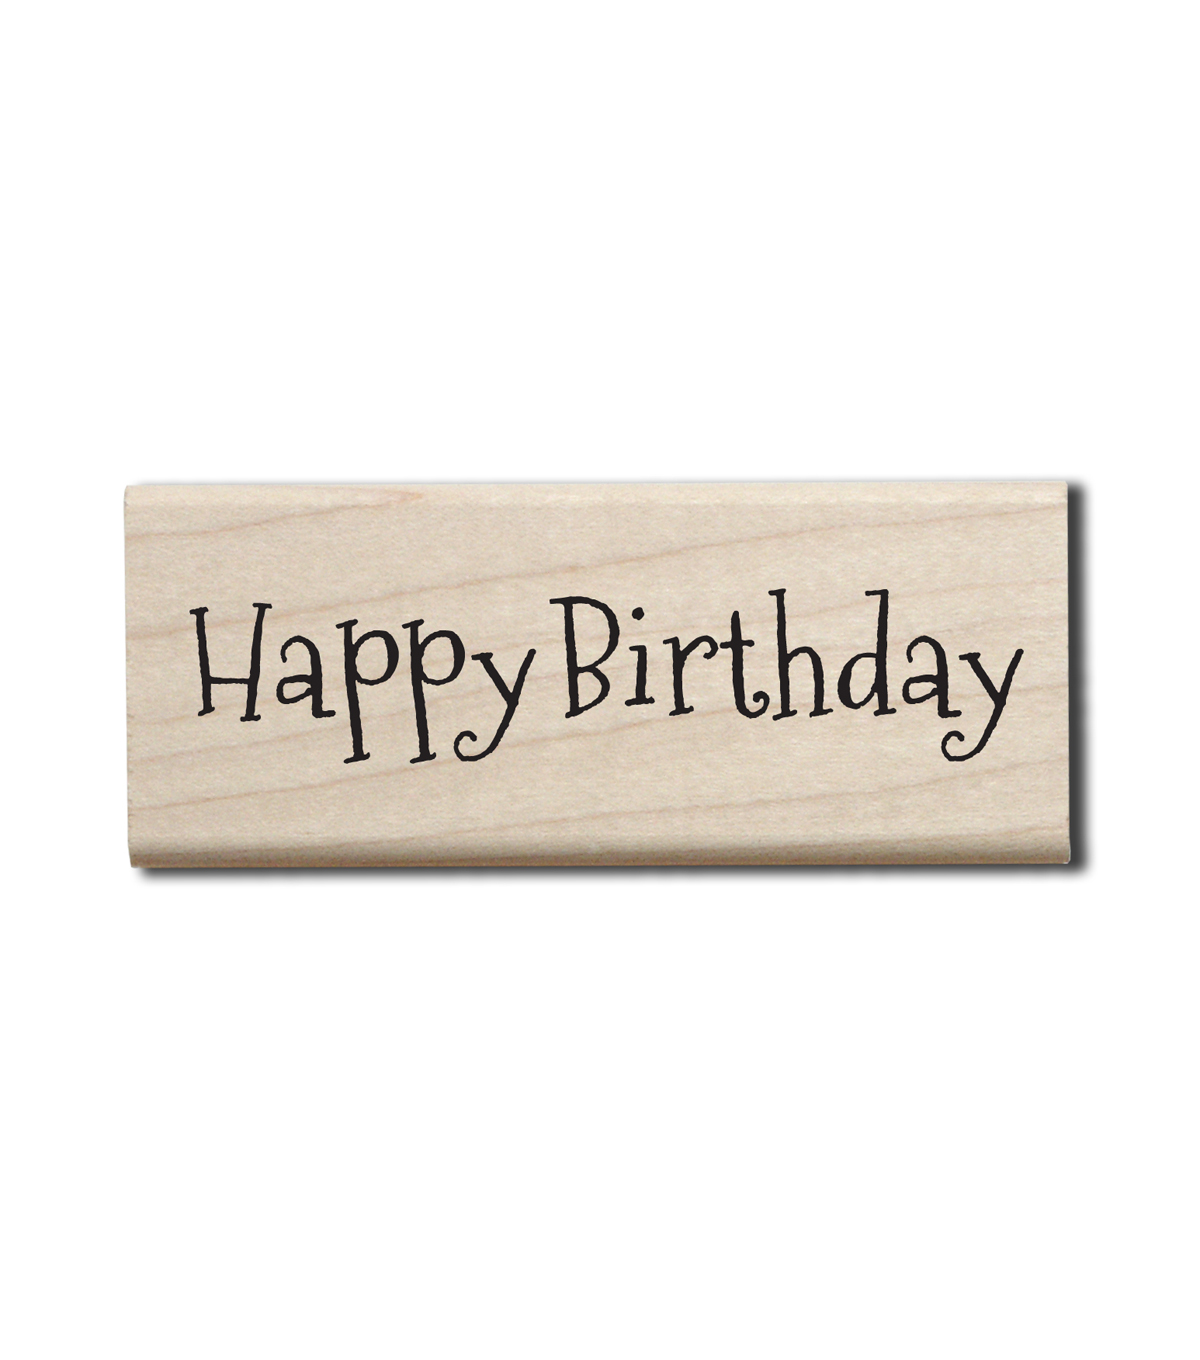 Hampton Art Wood Stamp-Happy Birthday